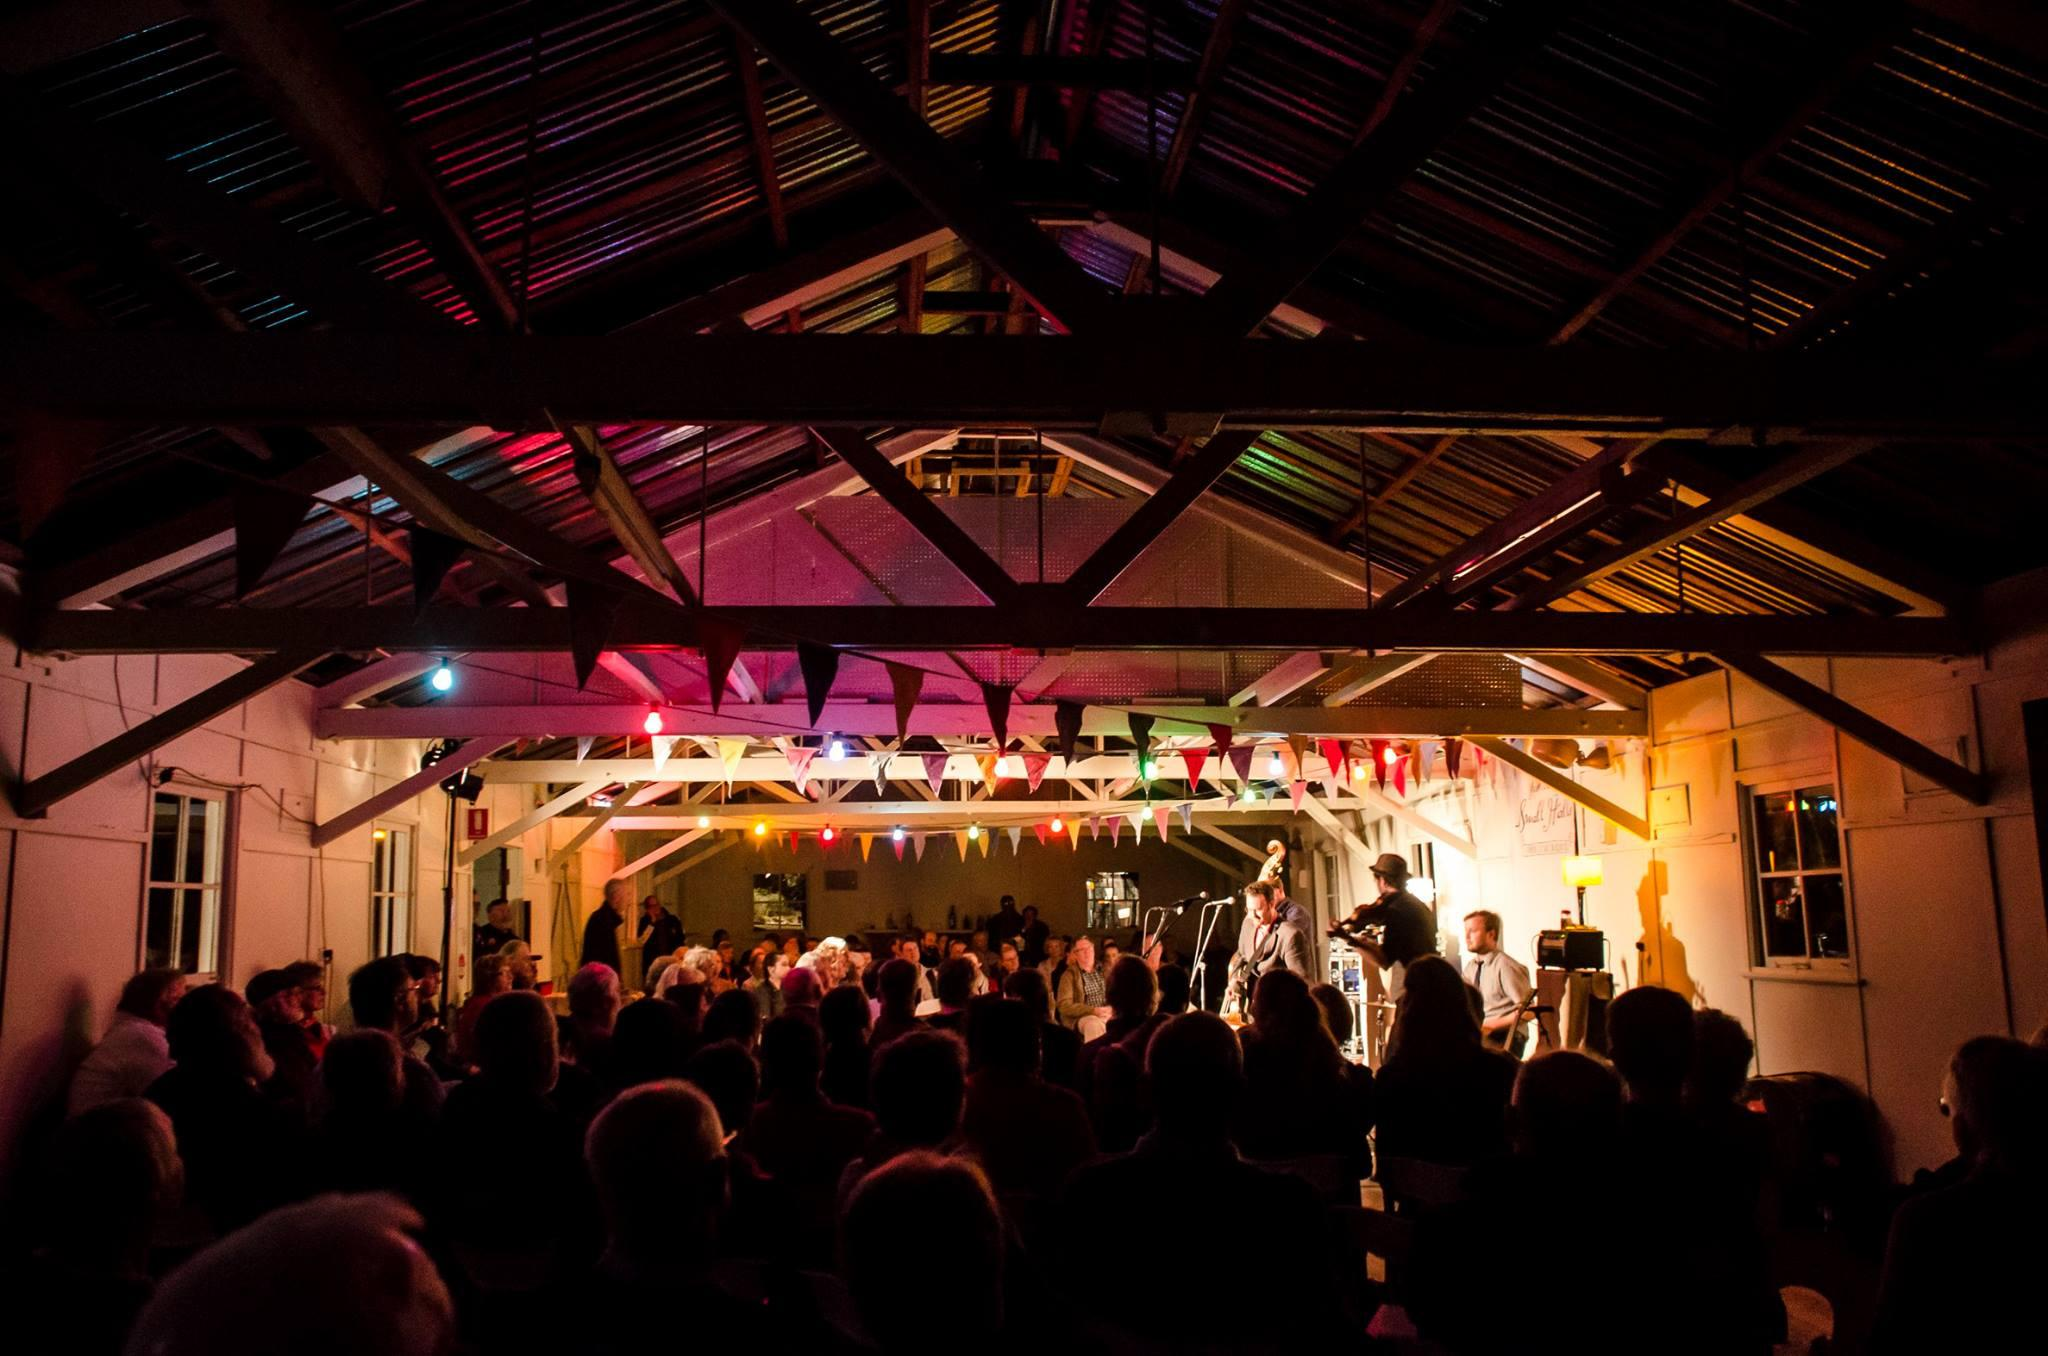 'You can feel the history': the music festival reviving old community halls